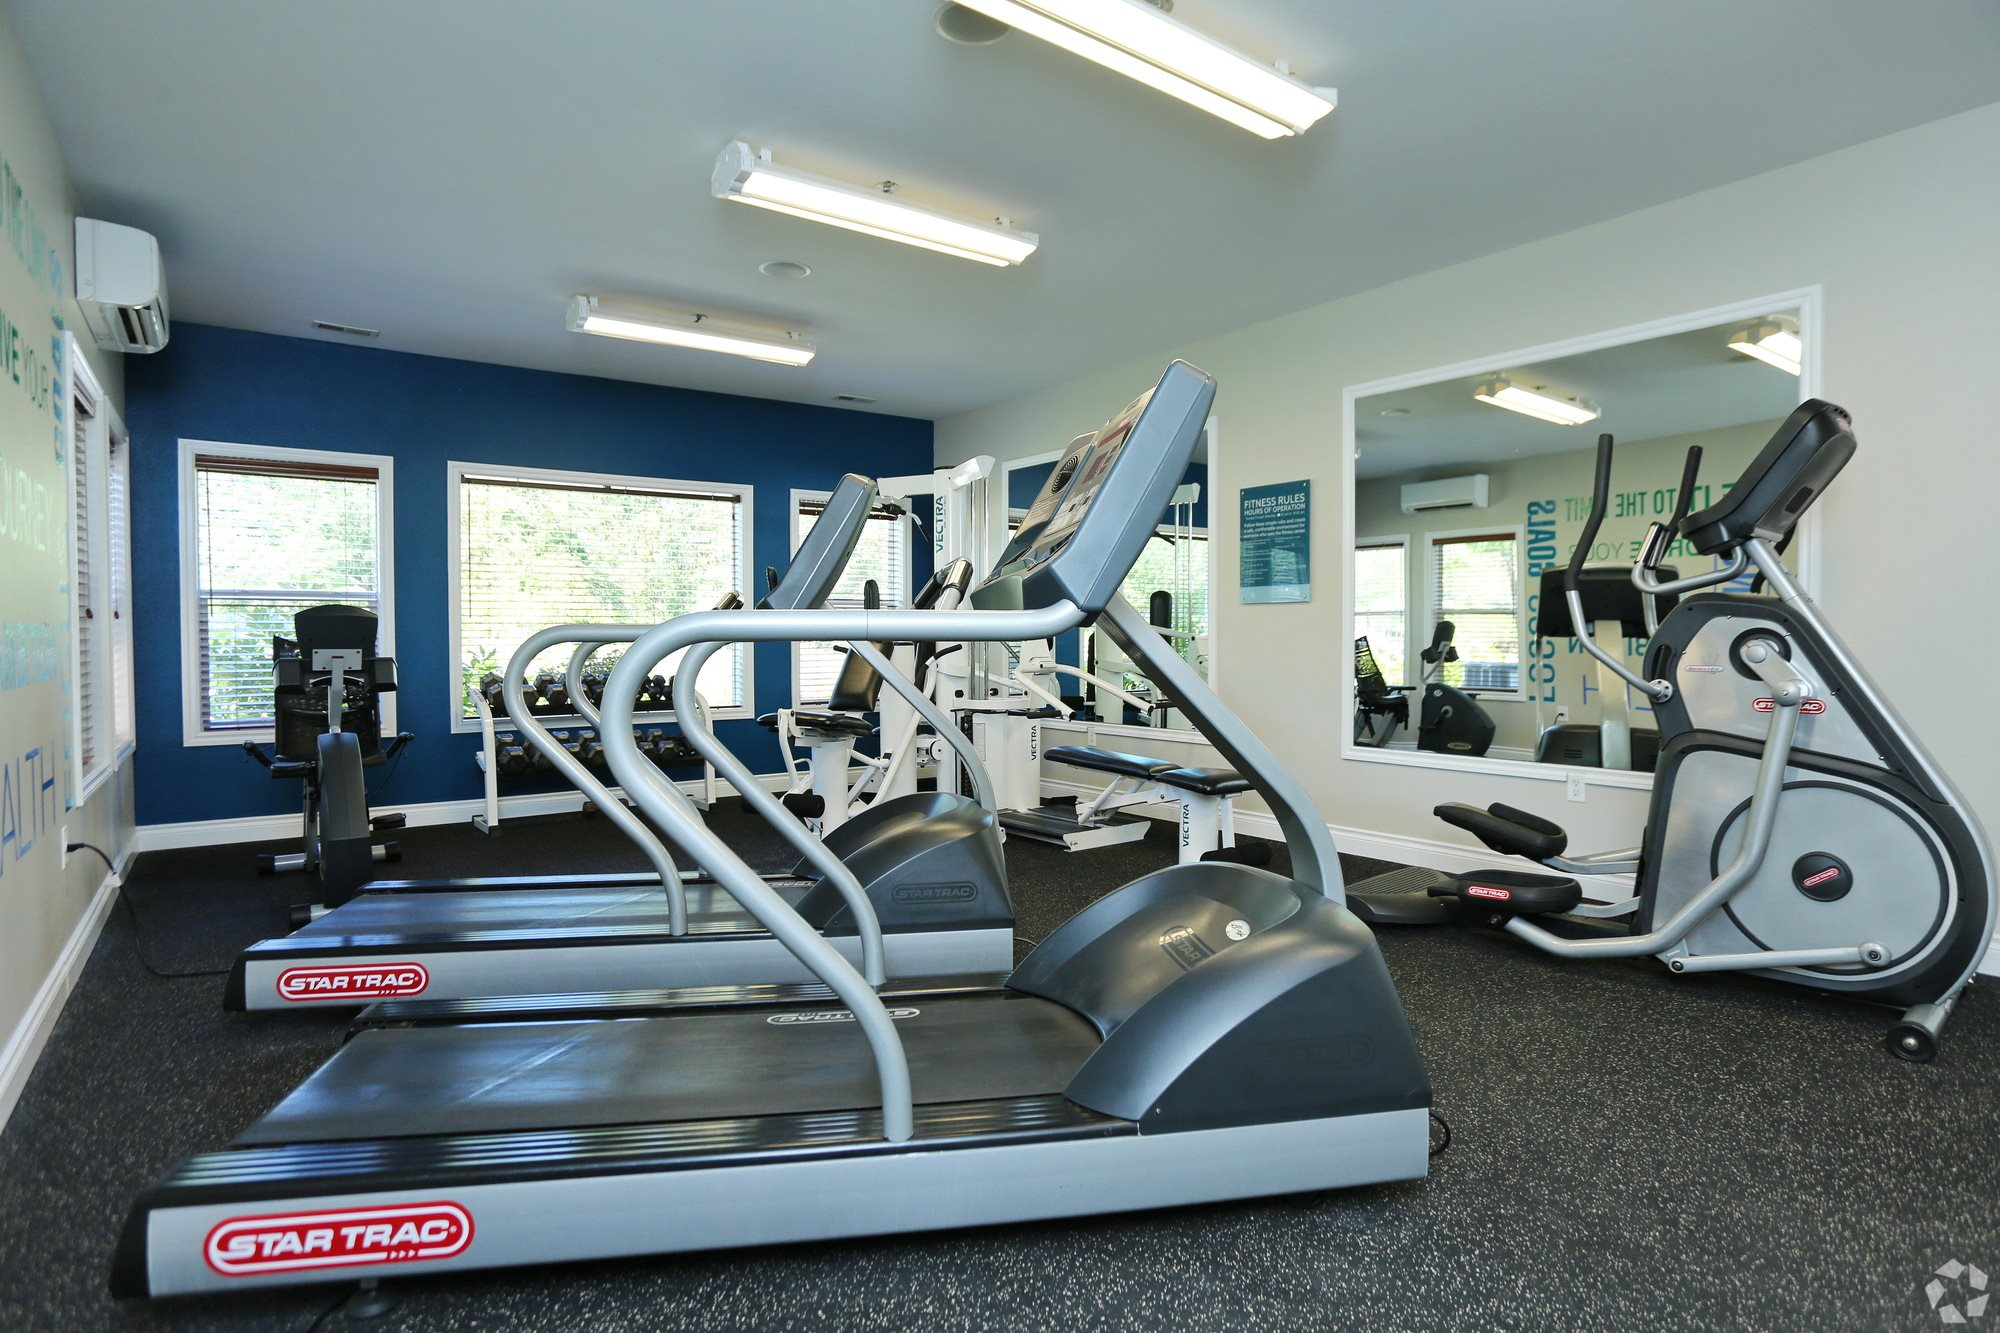 fitness center with treadmills, elliptical machine